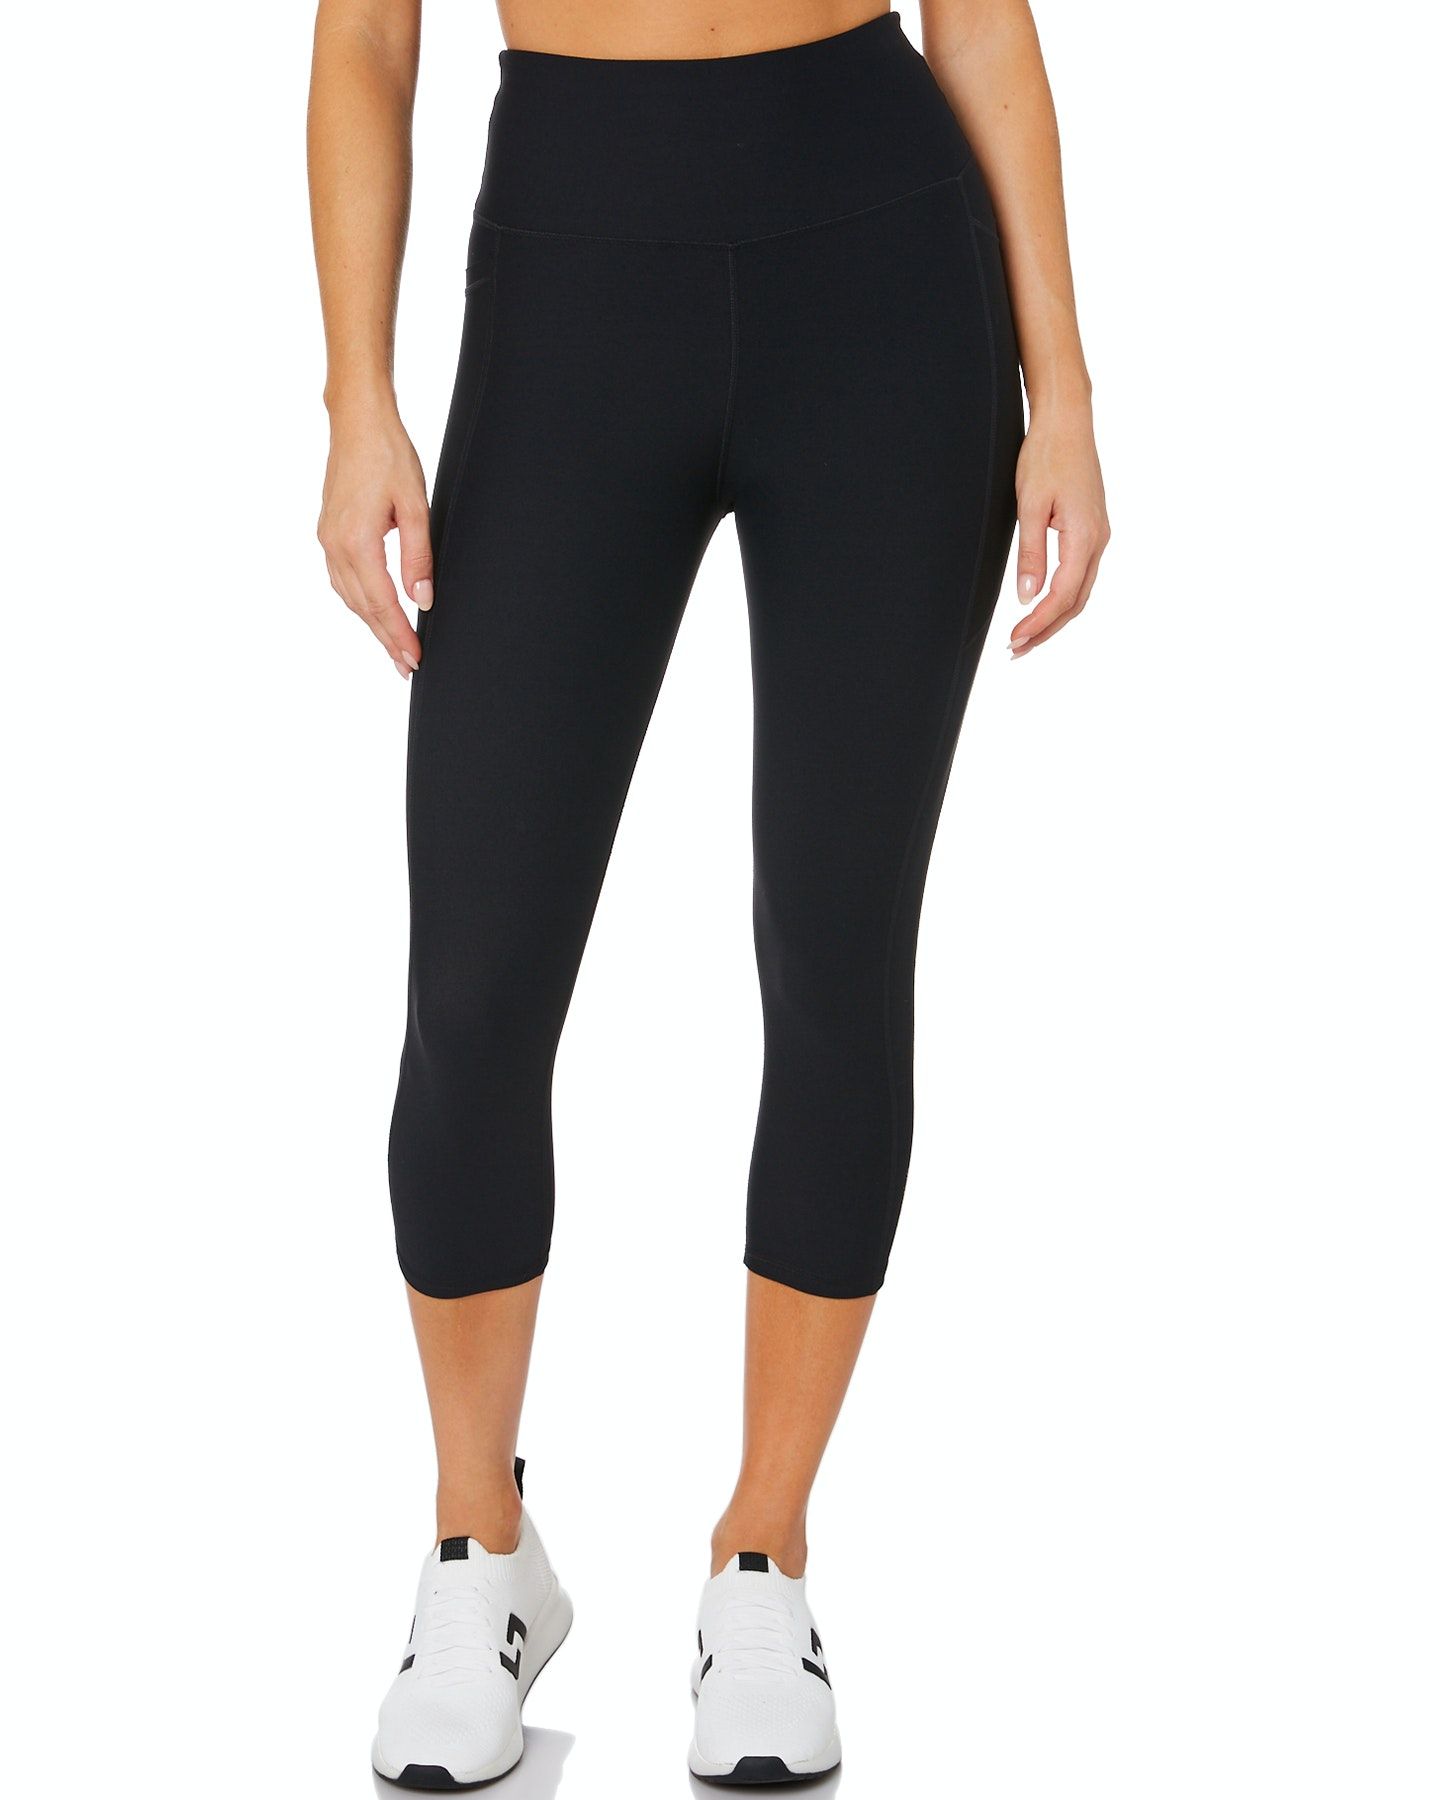 Dk Active Elite Midi Tight Black